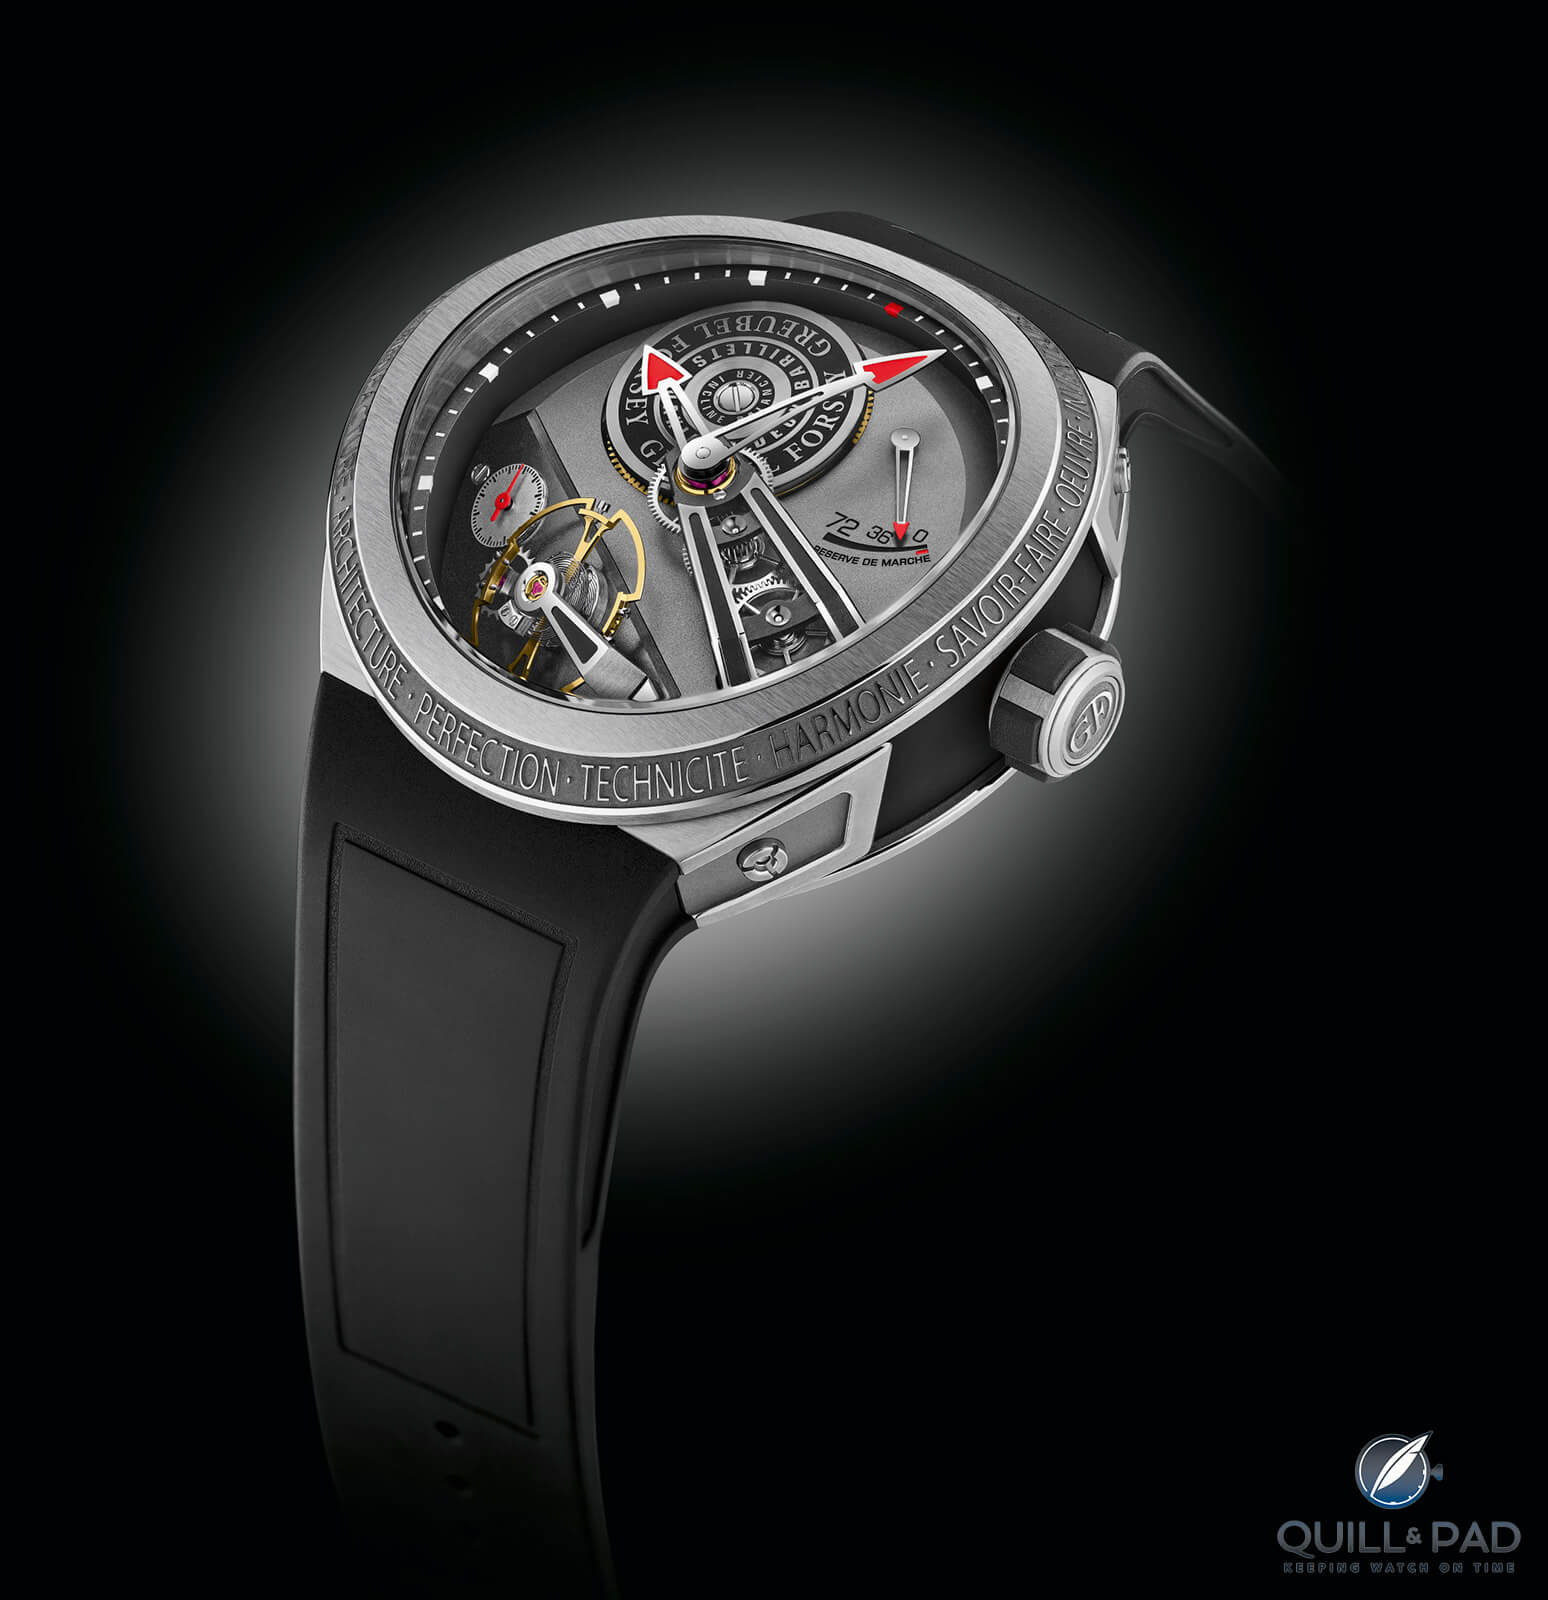 Greubel Forsey Balancier S: The New (Atypical) Shape Of Ultra-High-End Sport Watches